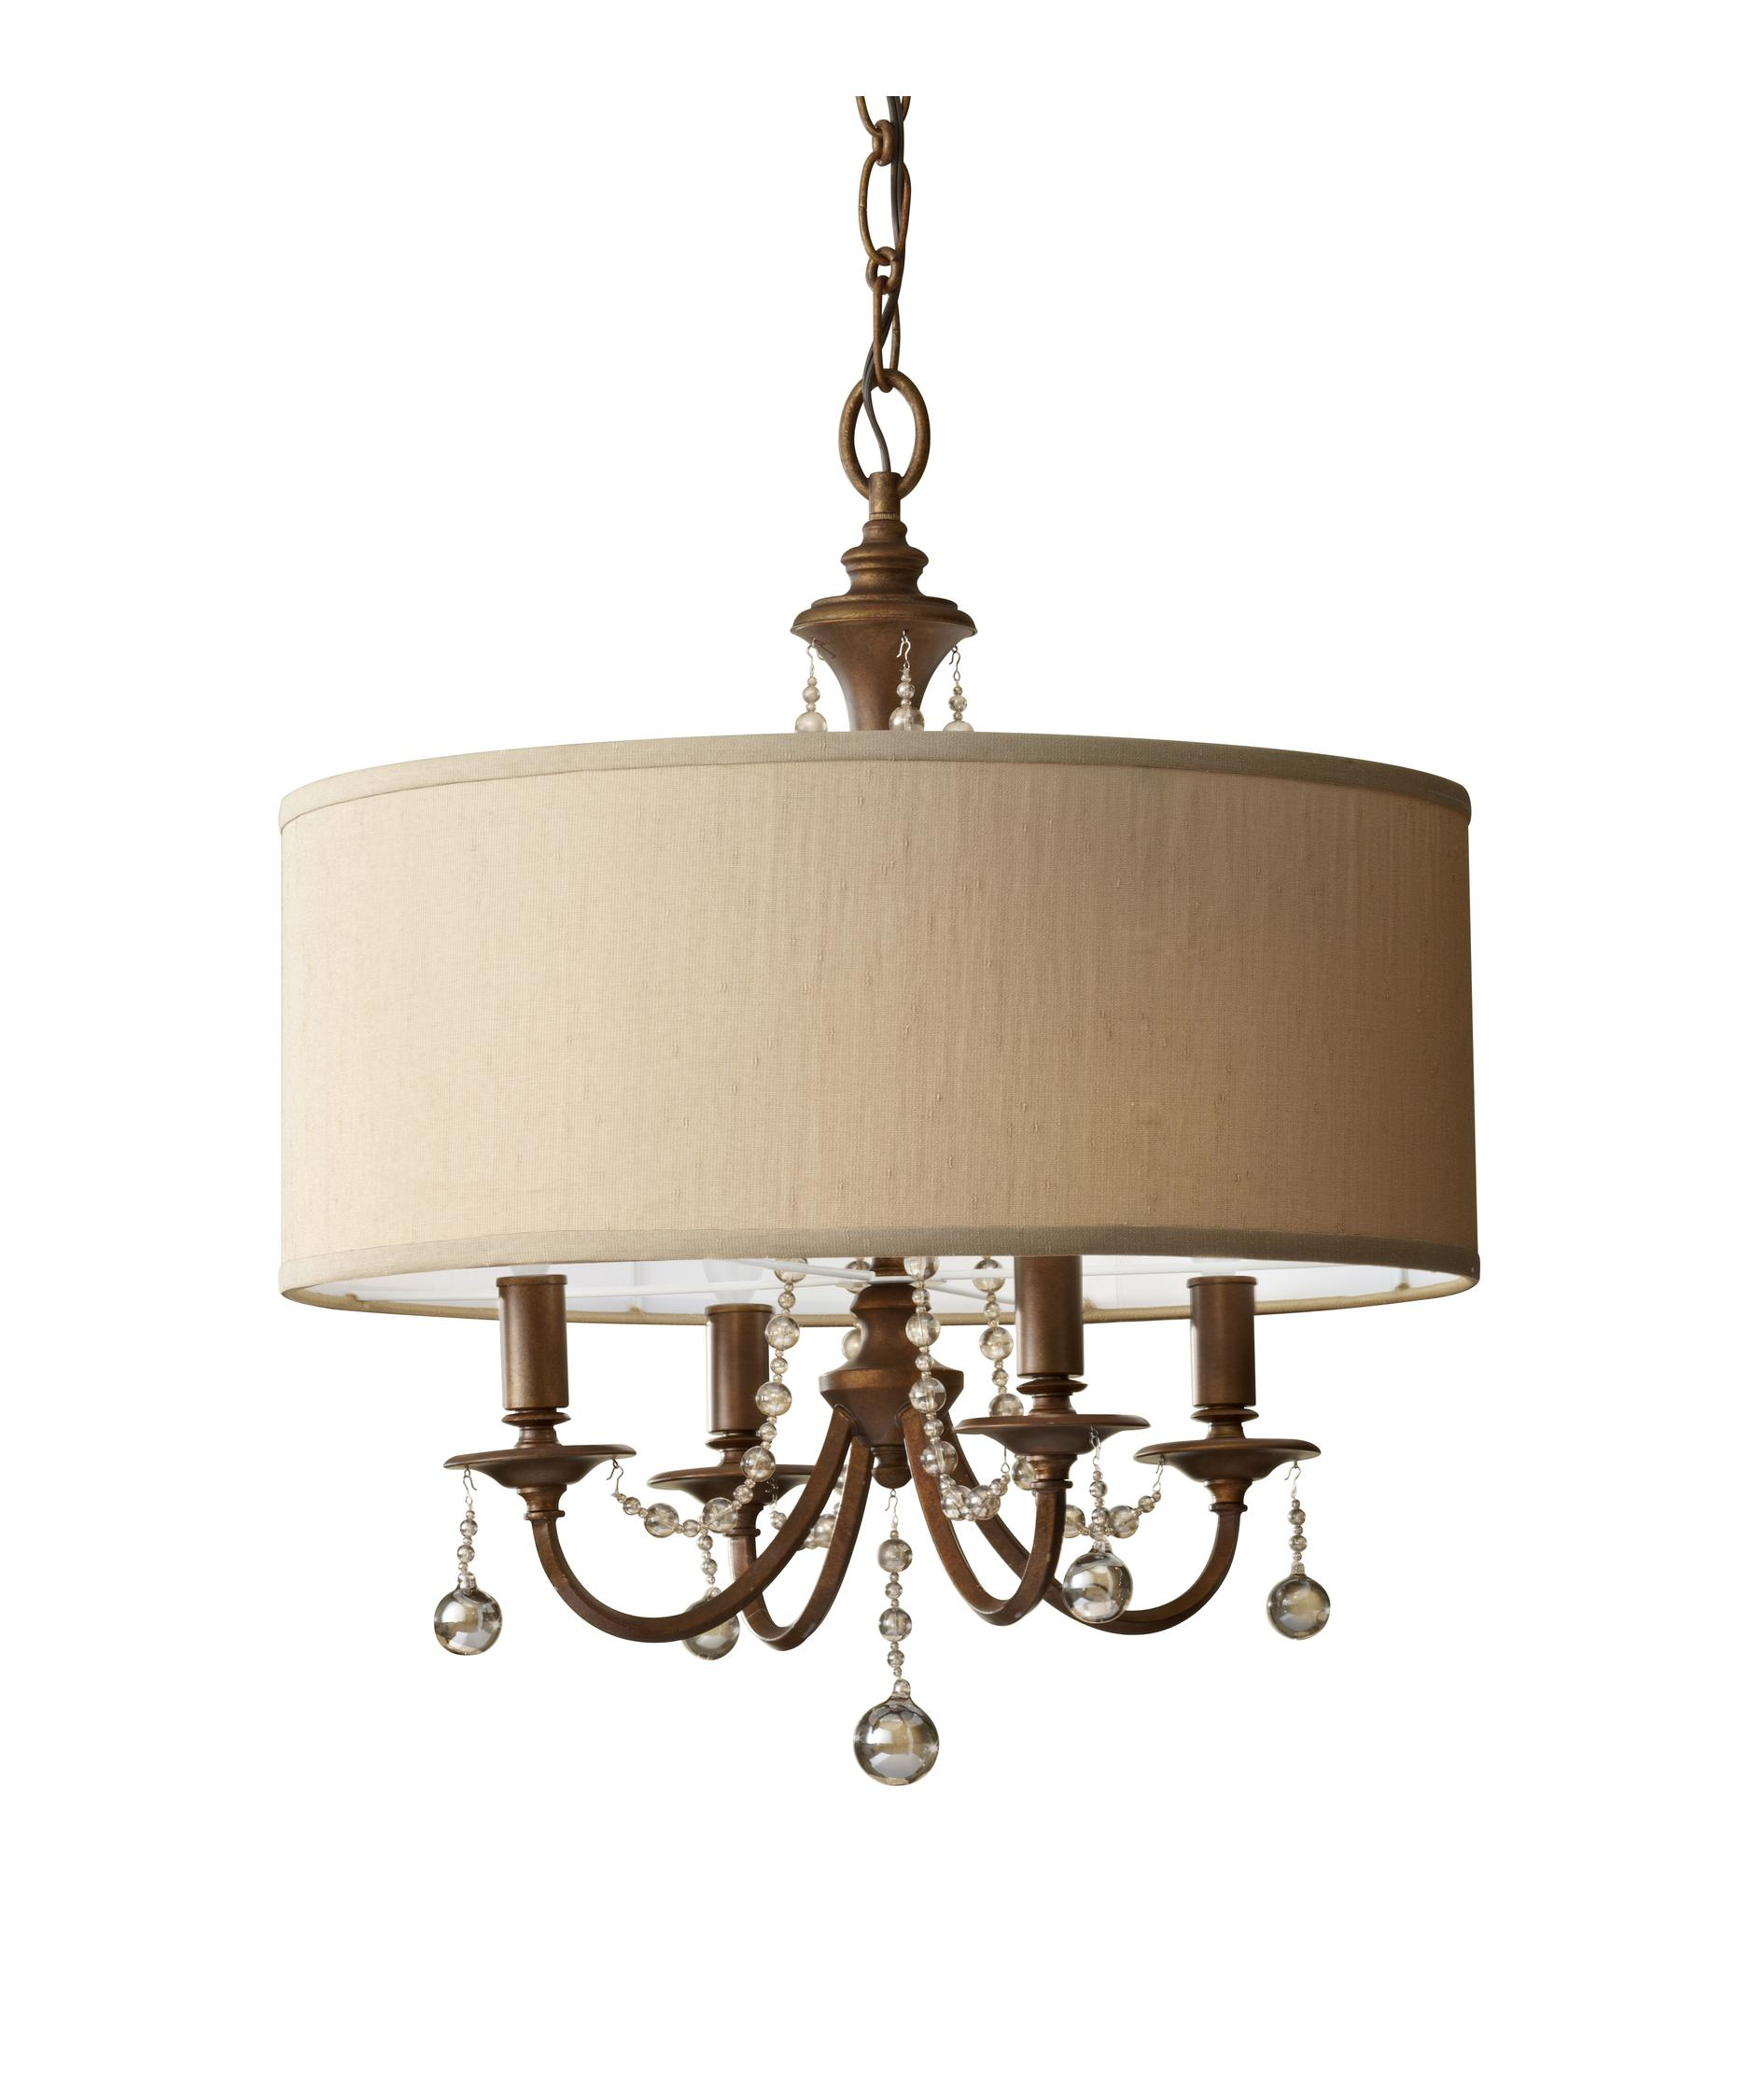 Lamp chandelier wonderful murray feiss lighting for home lighting feiss chandeliers murray feiss murray feiss lighting catalog arubaitofo Image collections